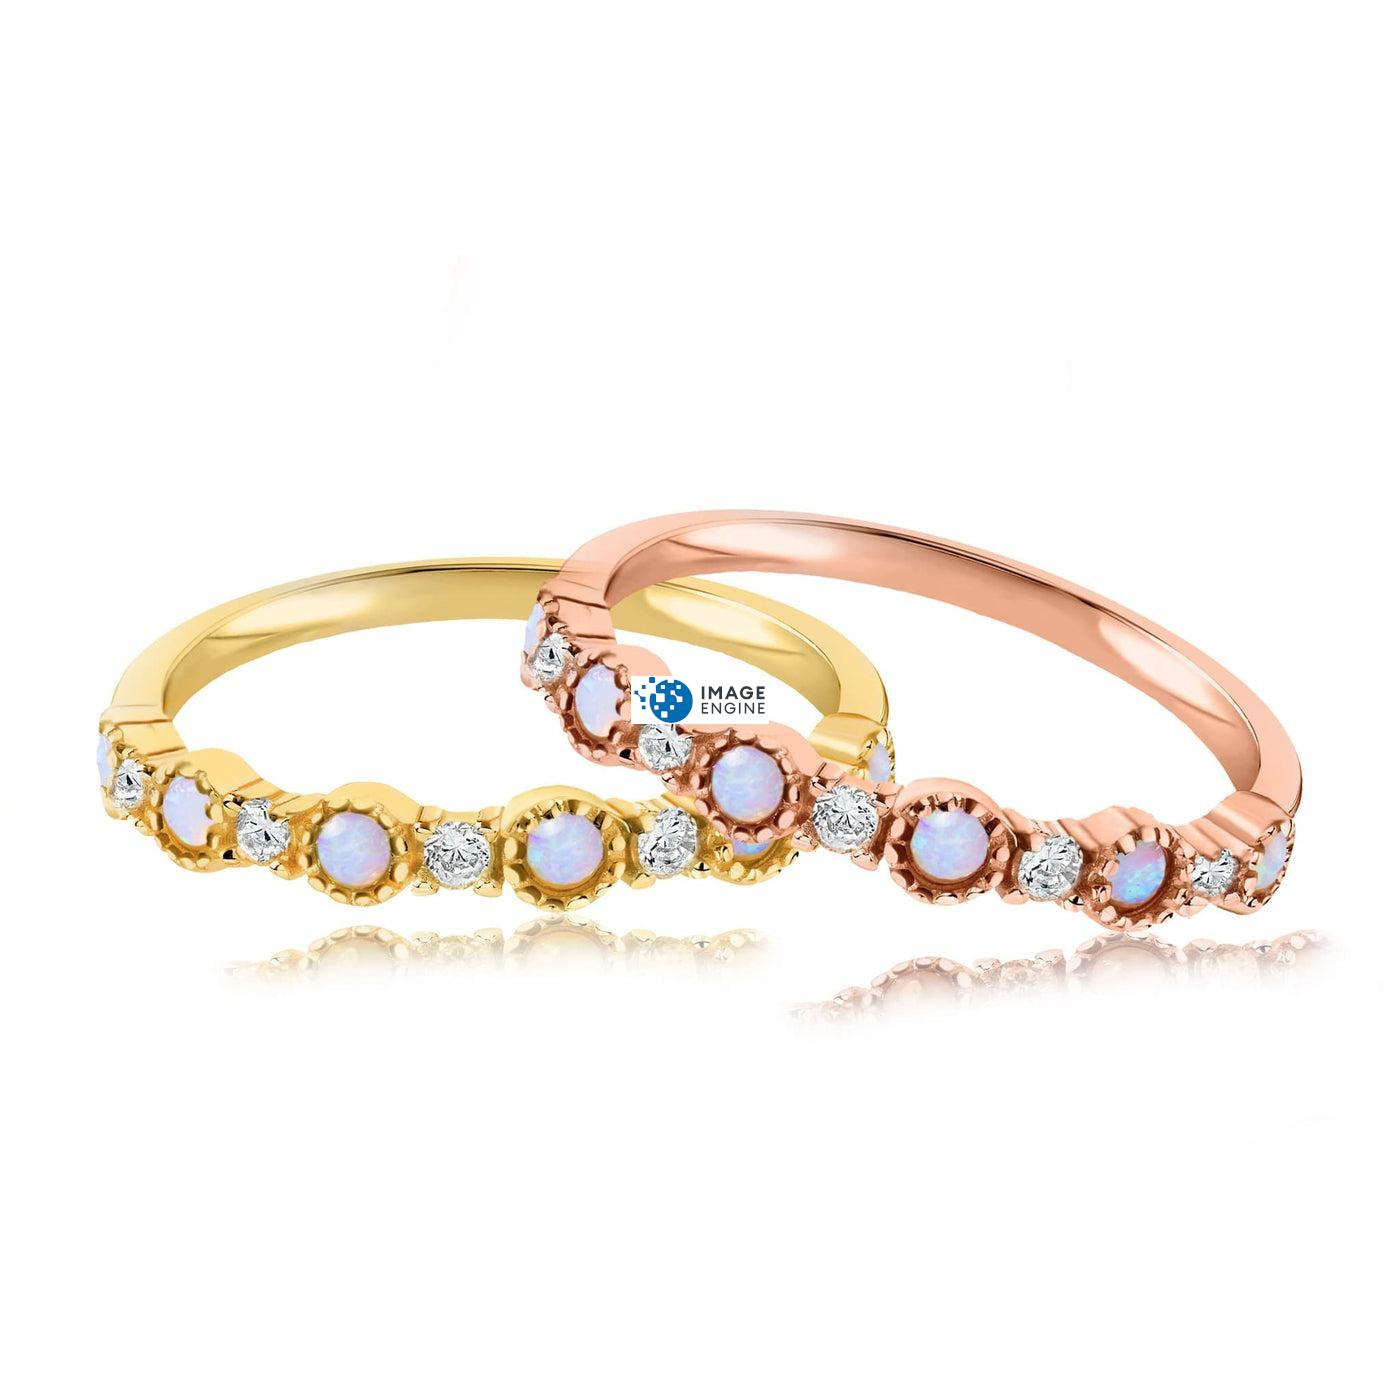 Debra Dots Opal Ring - Front View Side by Side - 18K Rose Gold Vermeil and 18K Yellow Gold Vermeil